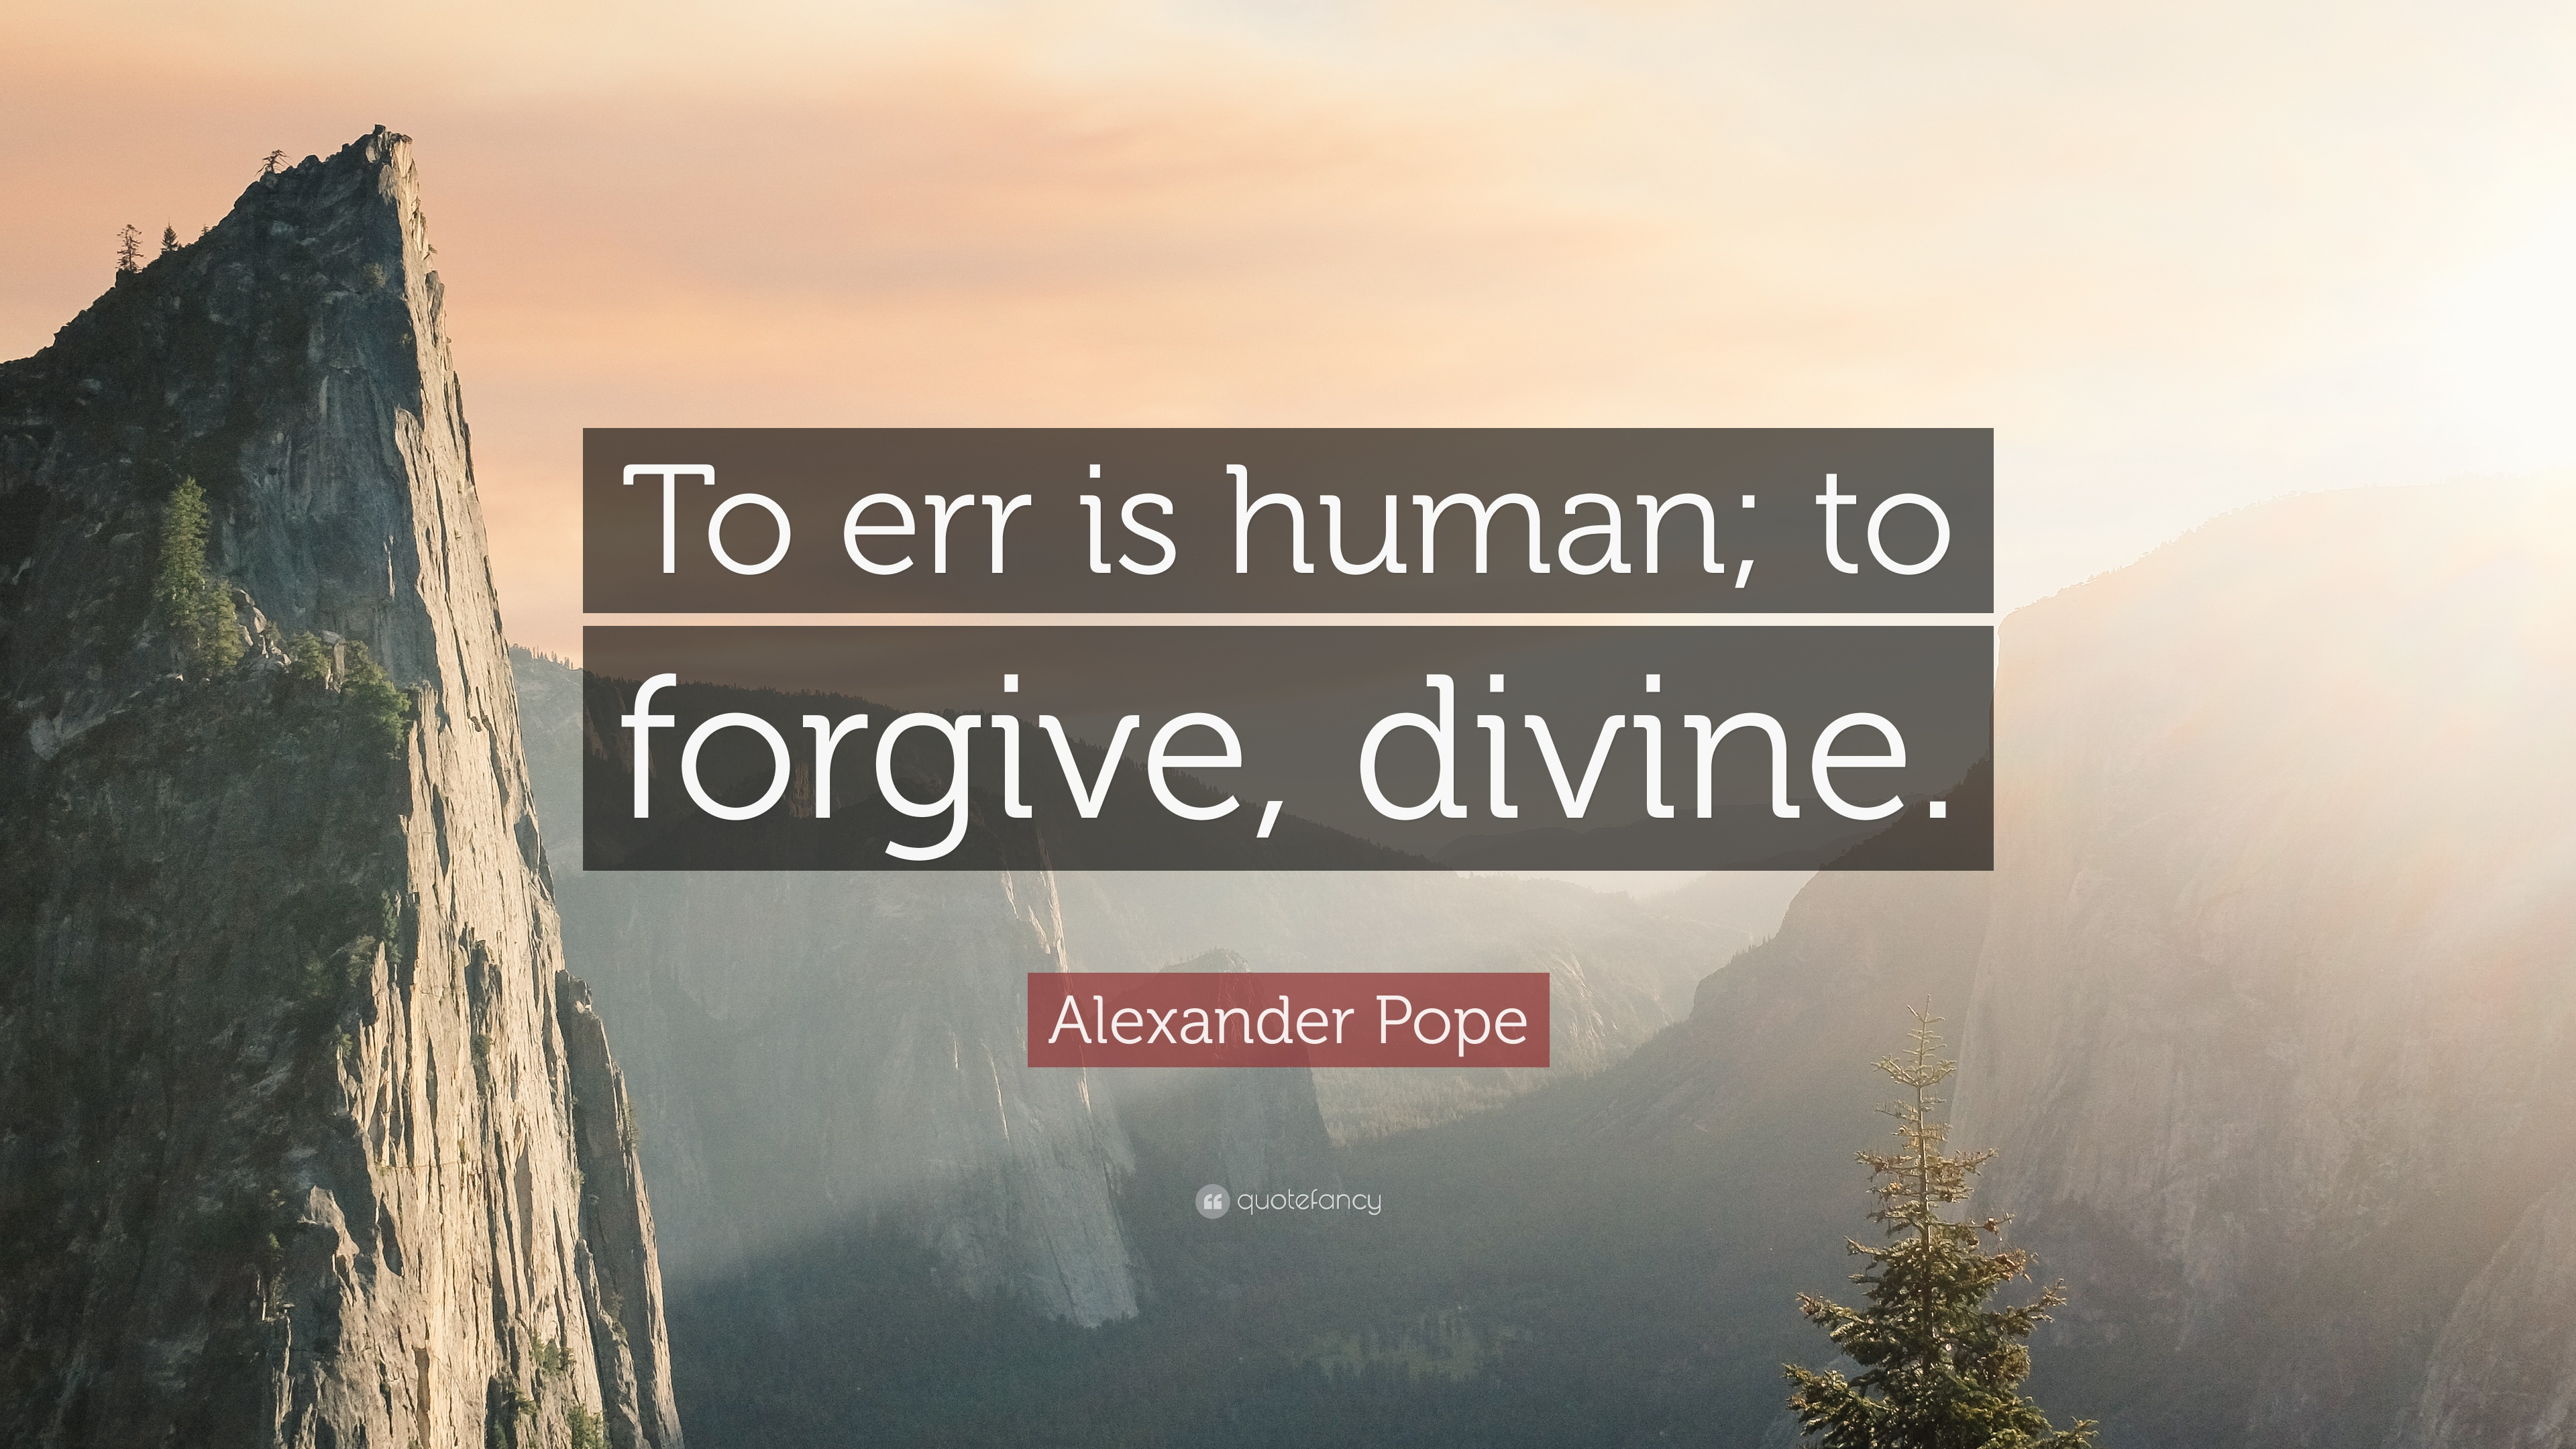 essay on to err is human to forgive is divine to err is human to alexander pope quote to err is human to forgive divine alexander pope quote